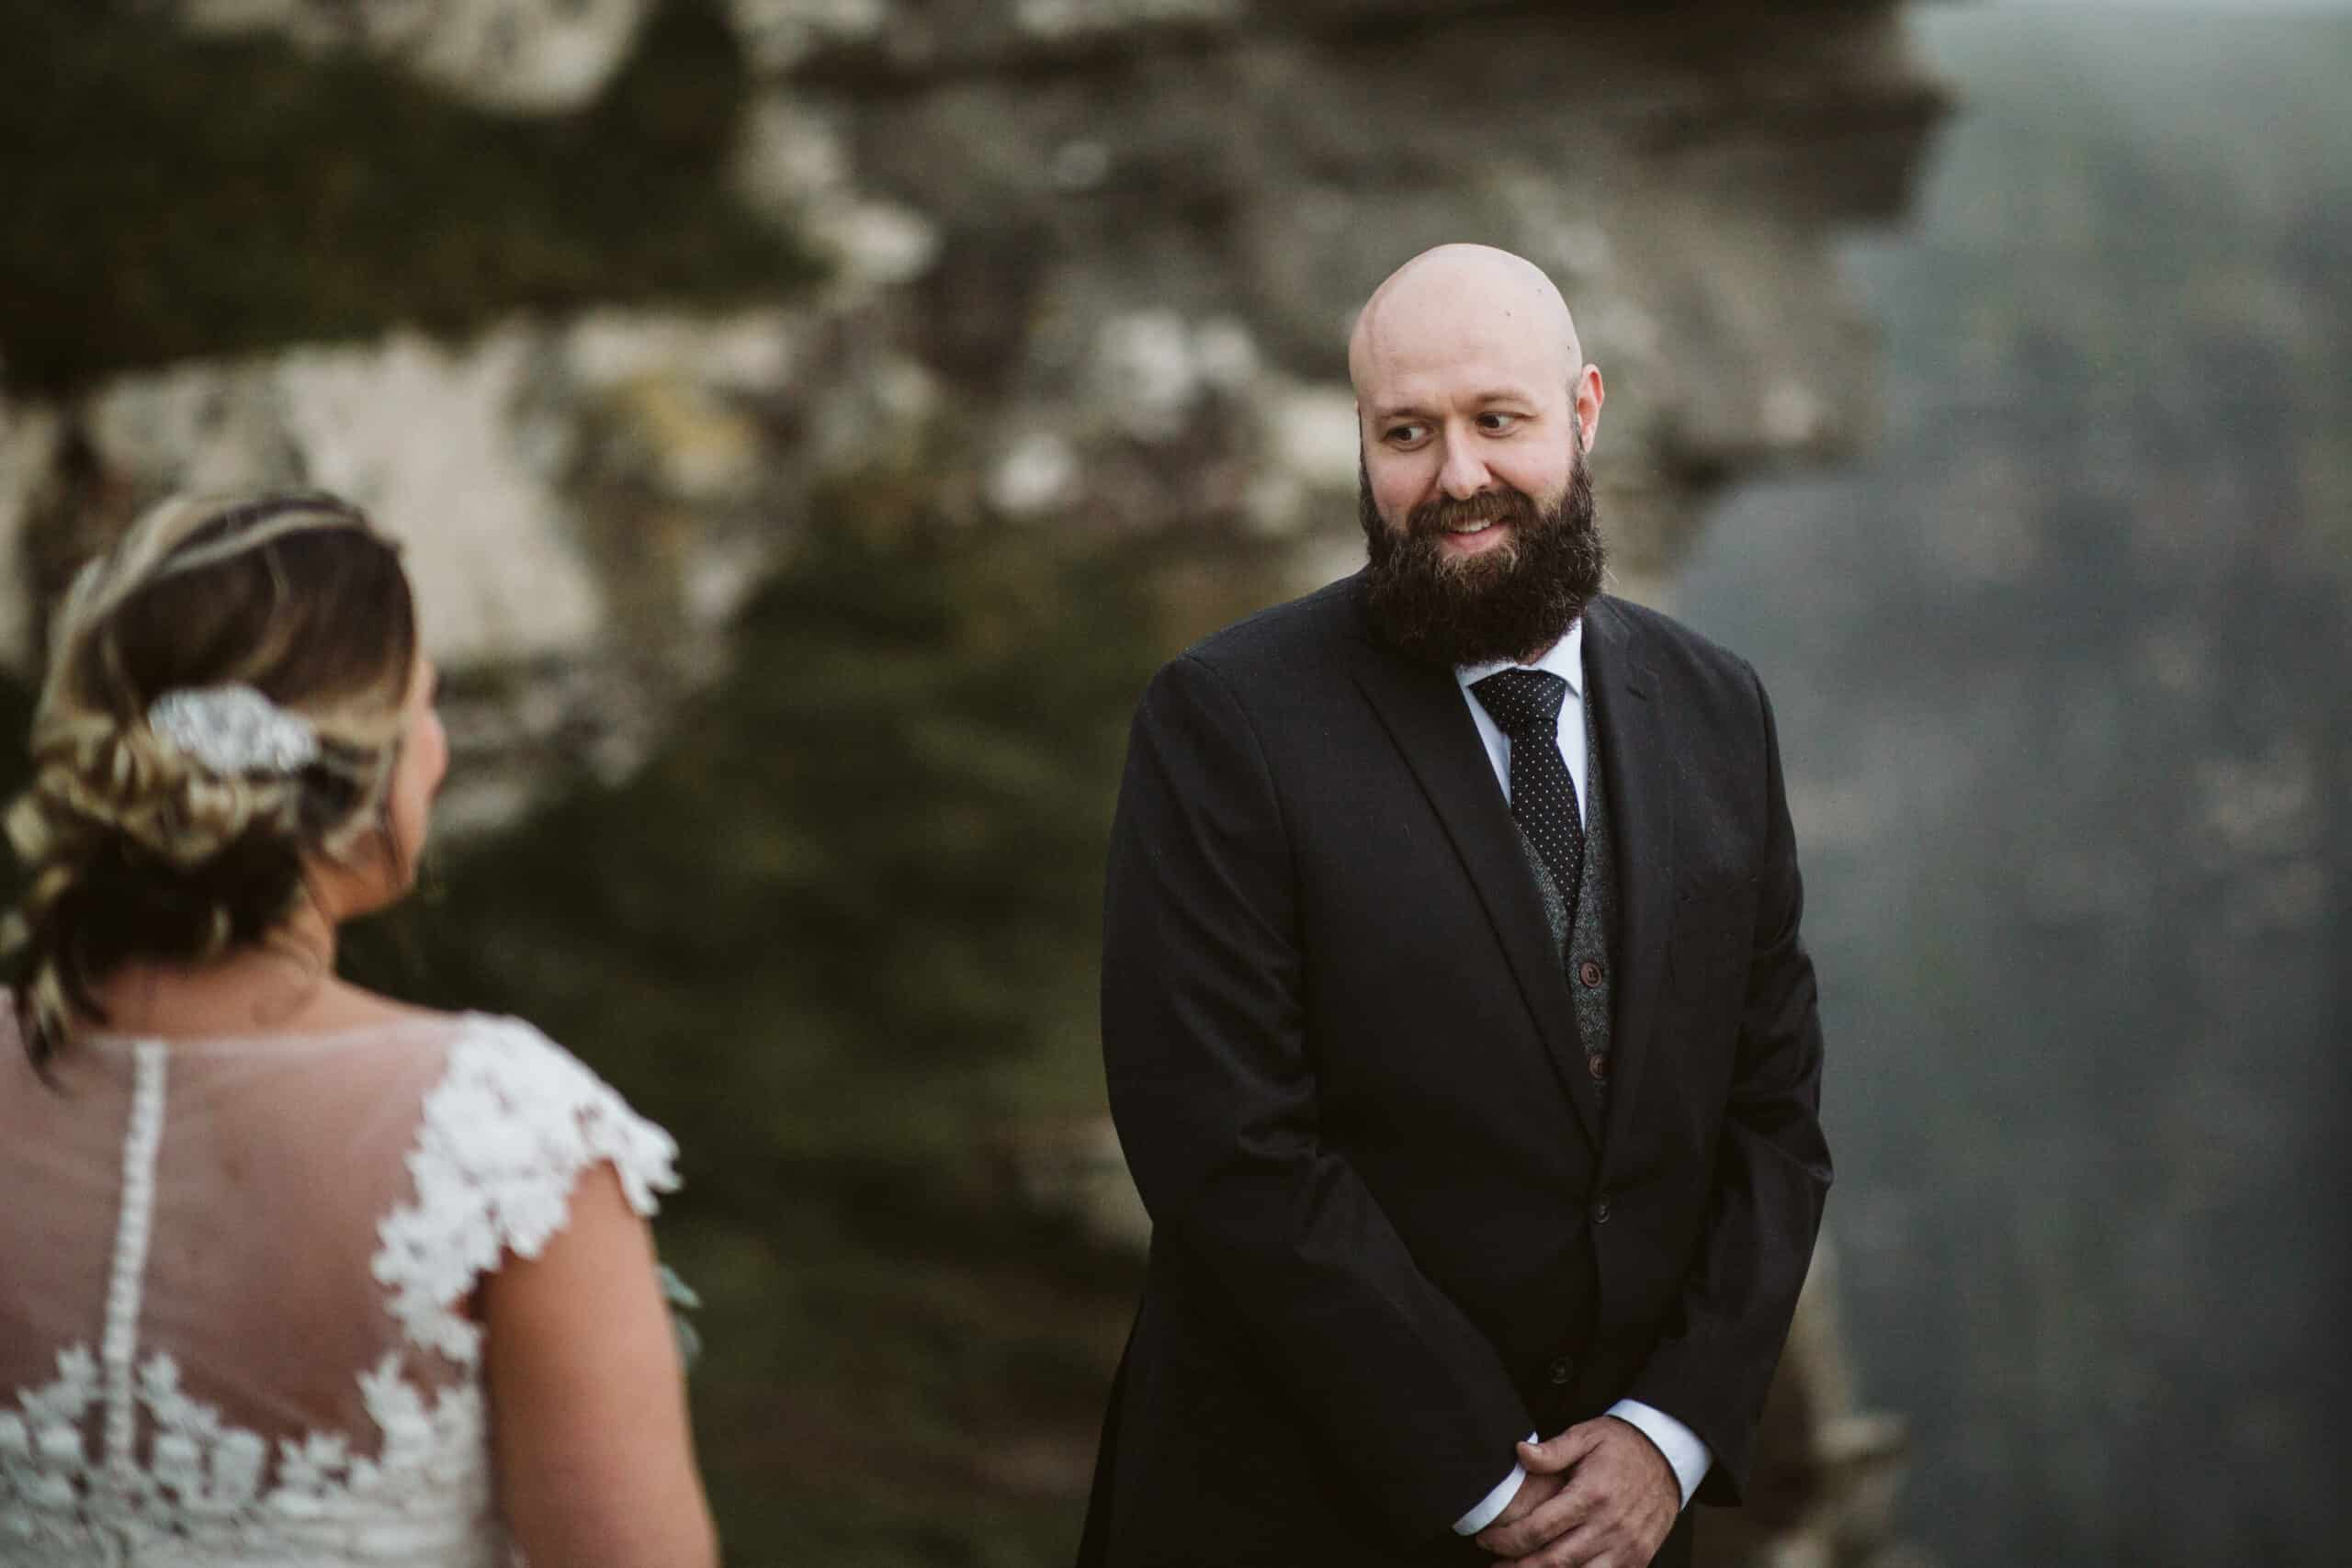 Cliffs of Moher Wedding Hags head, groom sees bride for the first time in dress